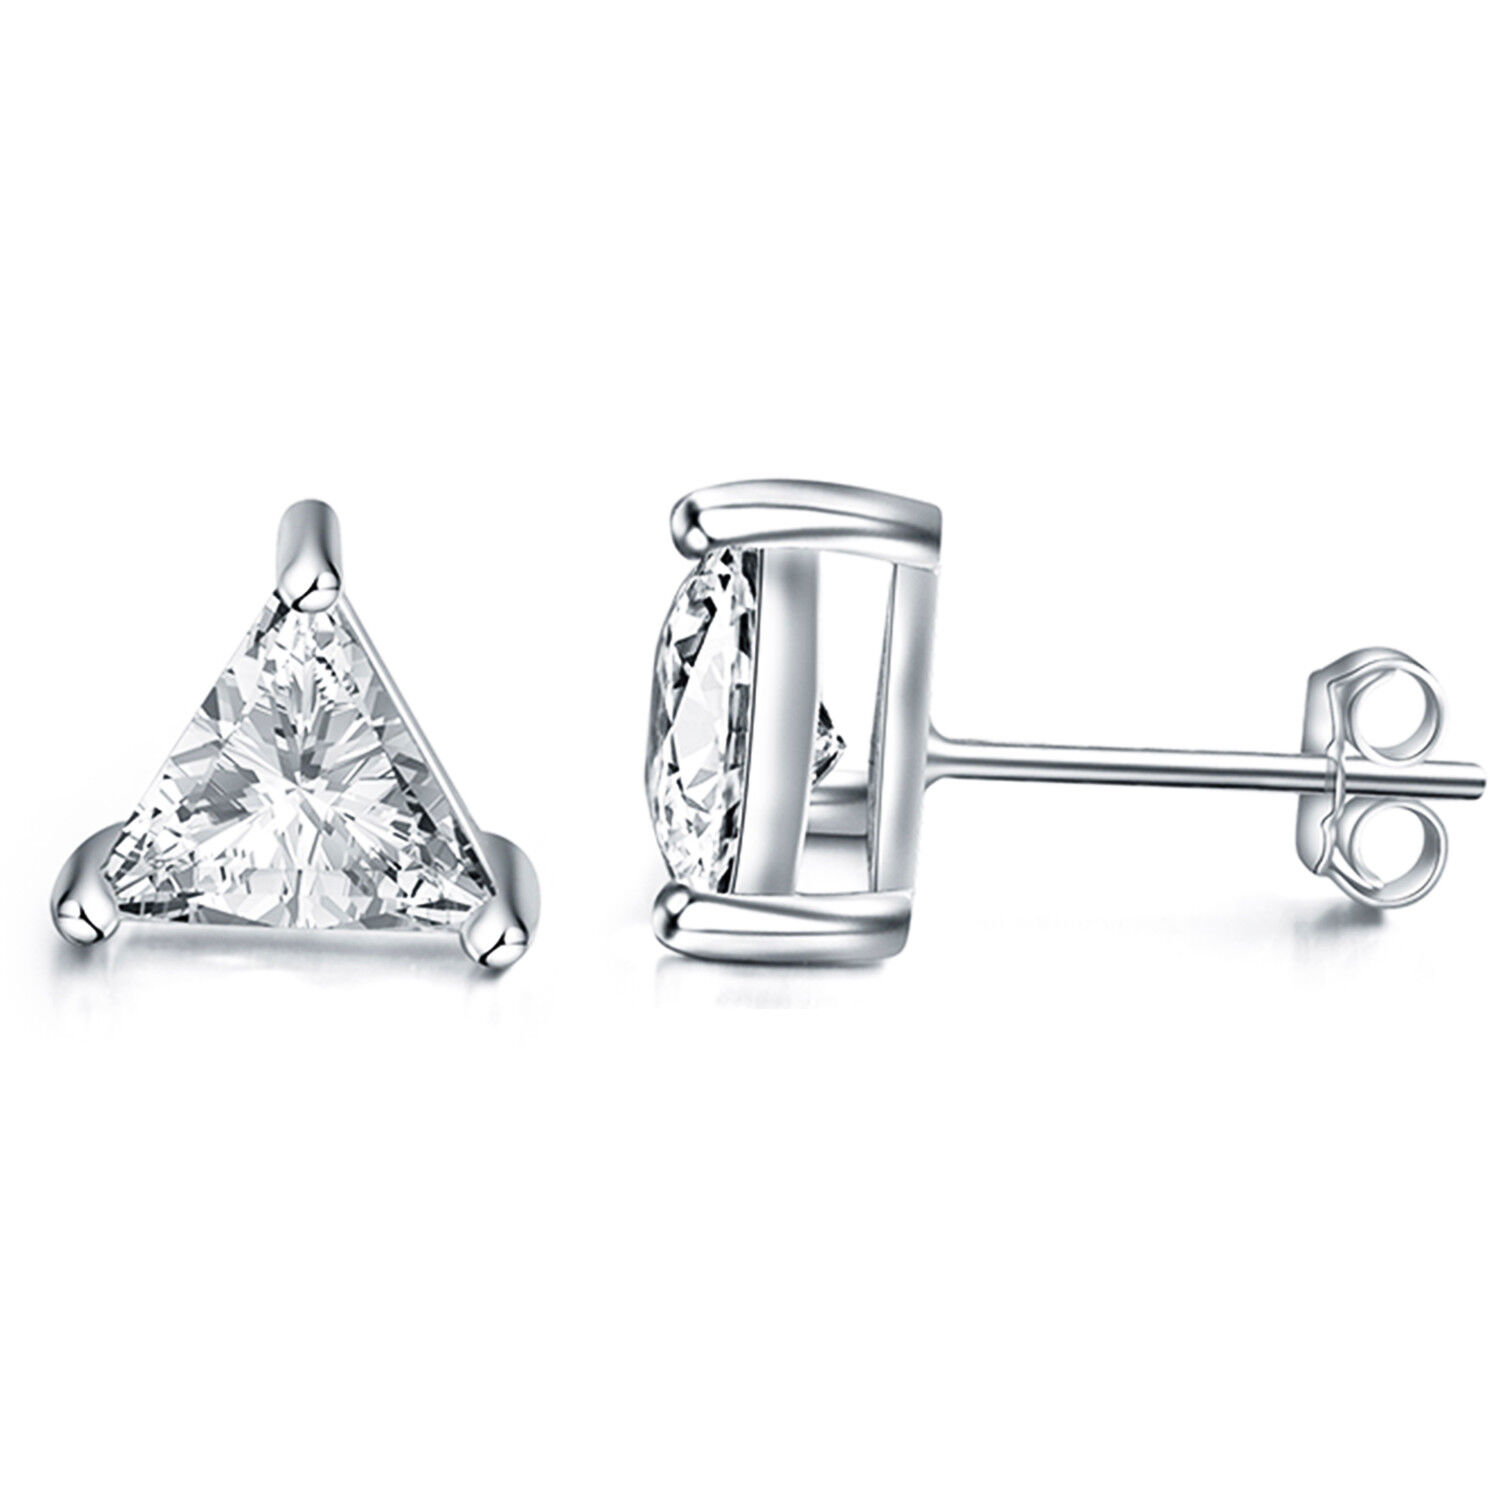 d04280418 Details about 925 Sterling Silver 3 Prong Triangle Cubic Zirconia Stud  Earring 14k Gold Plated